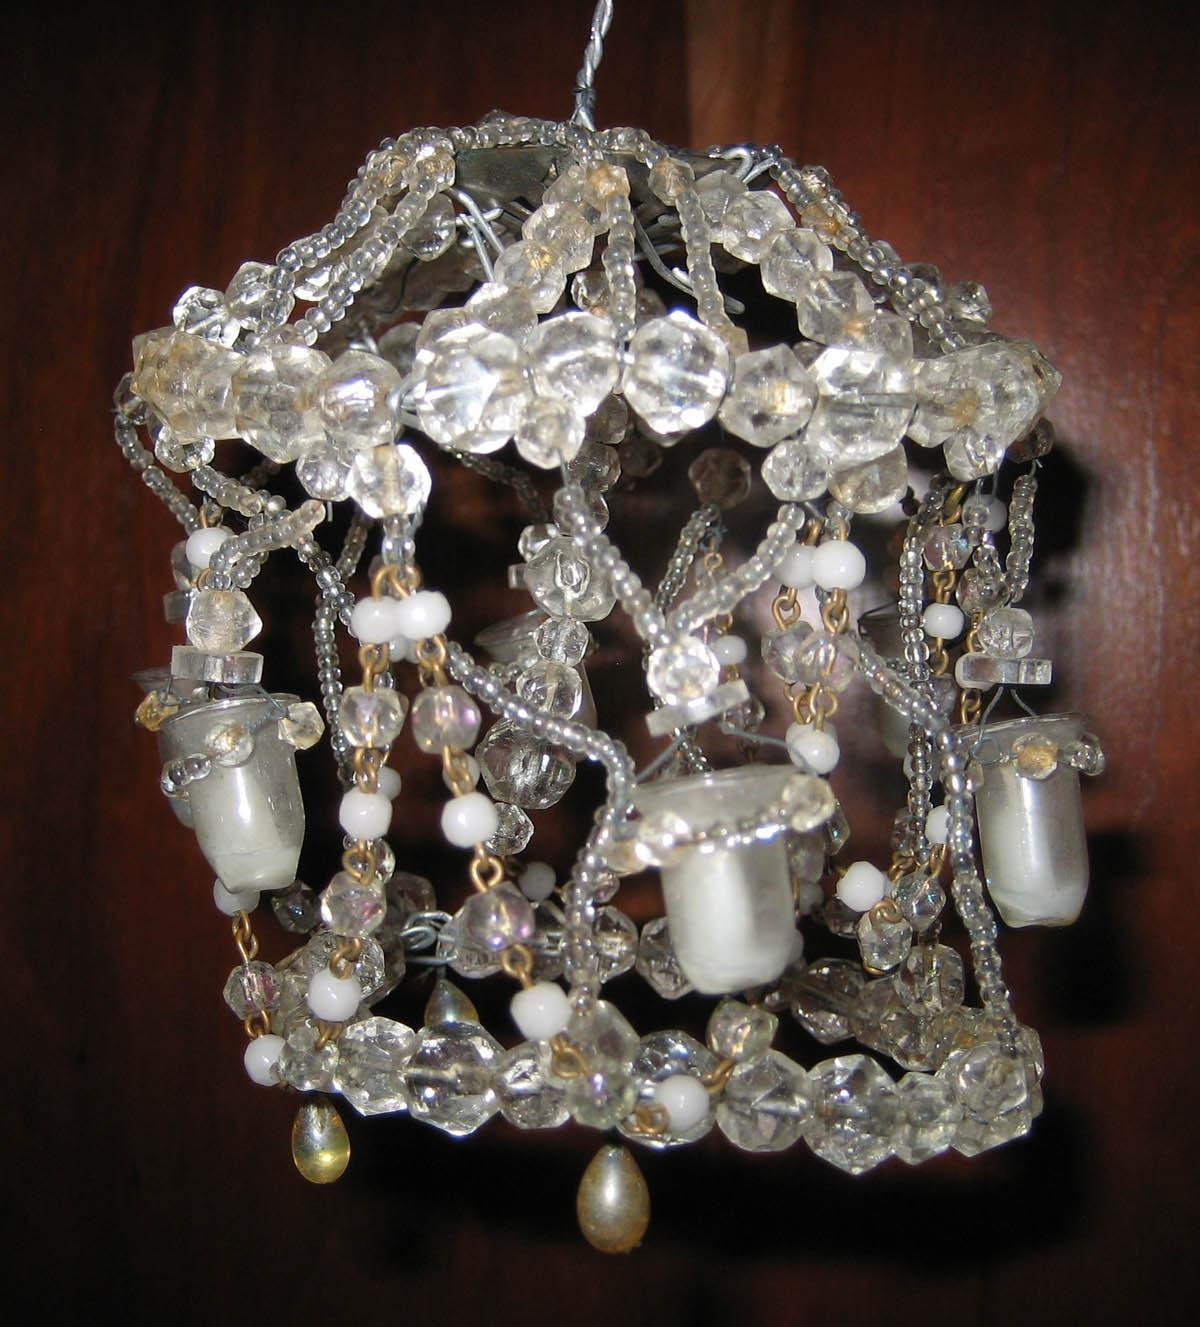 Crystal Chandelier Small Size: Larger Size Crystal Miniature Dollhouse Antique Chandelier